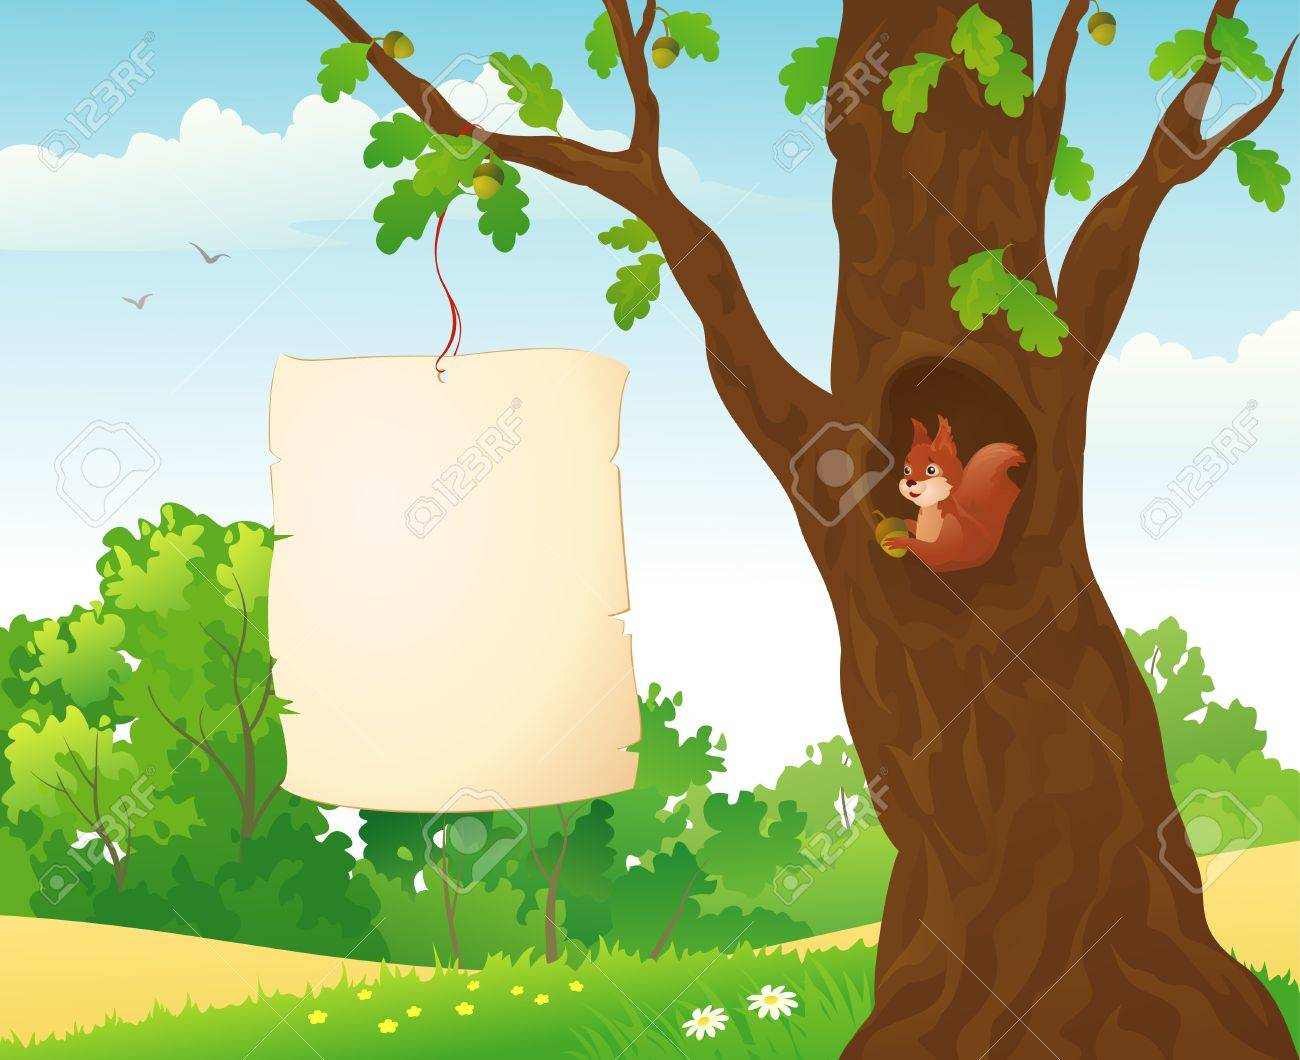 Vector illustration of a banner in the forest Stock Vector - 20464663